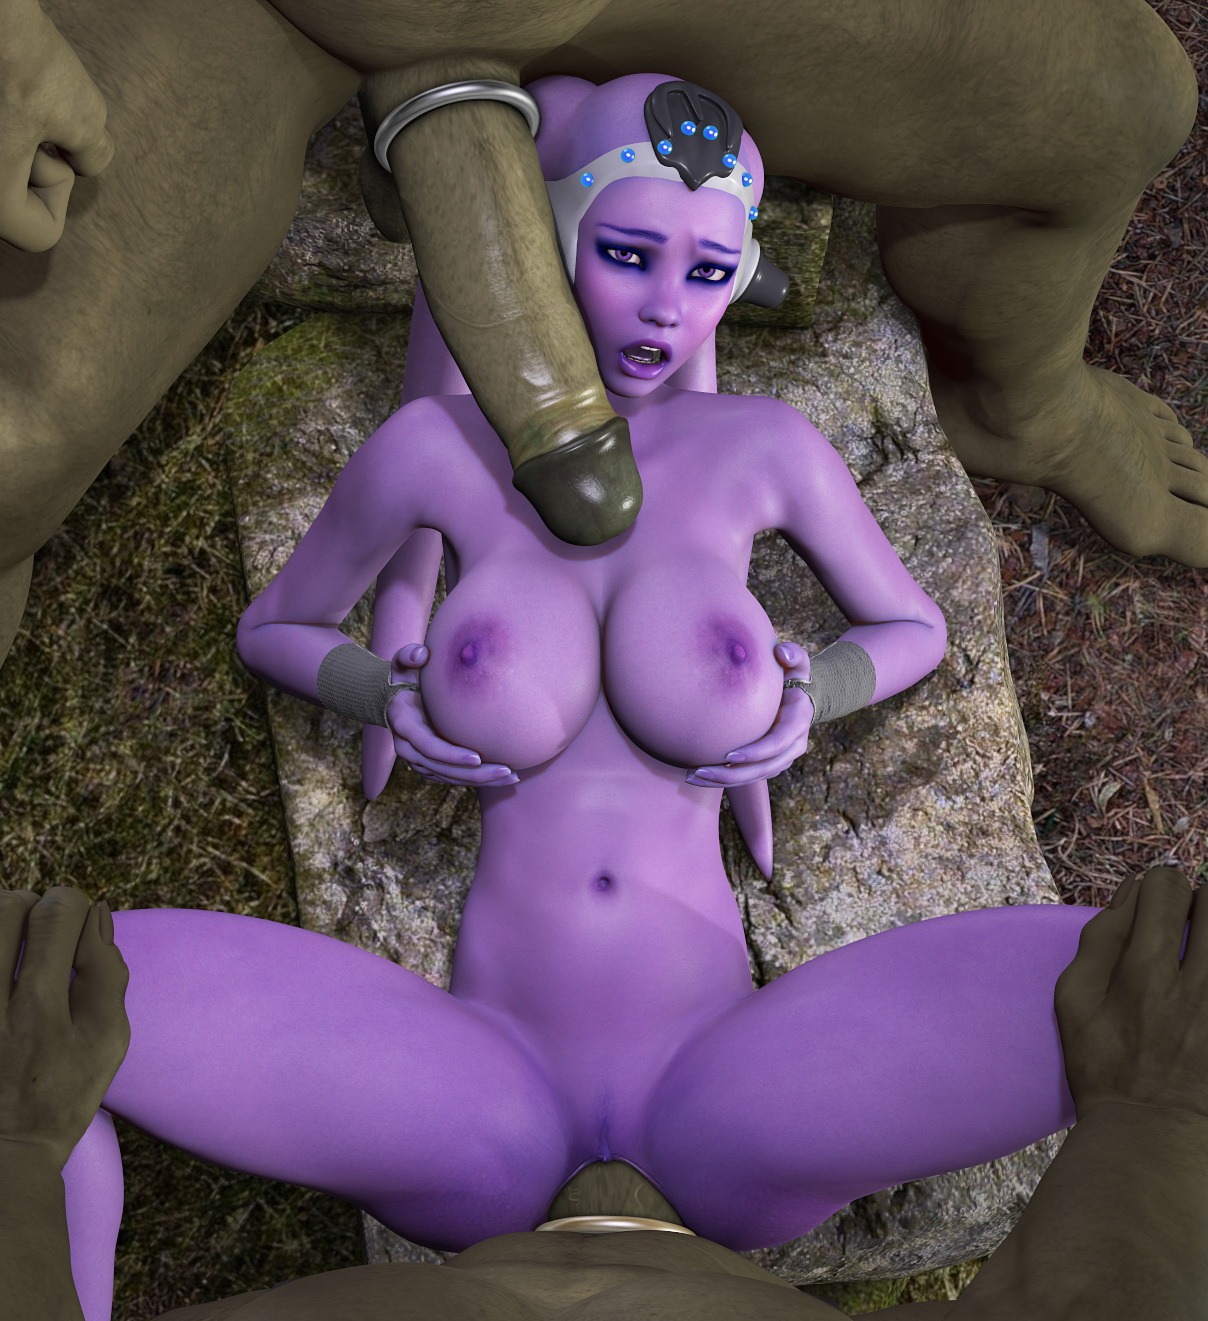 Monster tits fuck 3d smut gallery